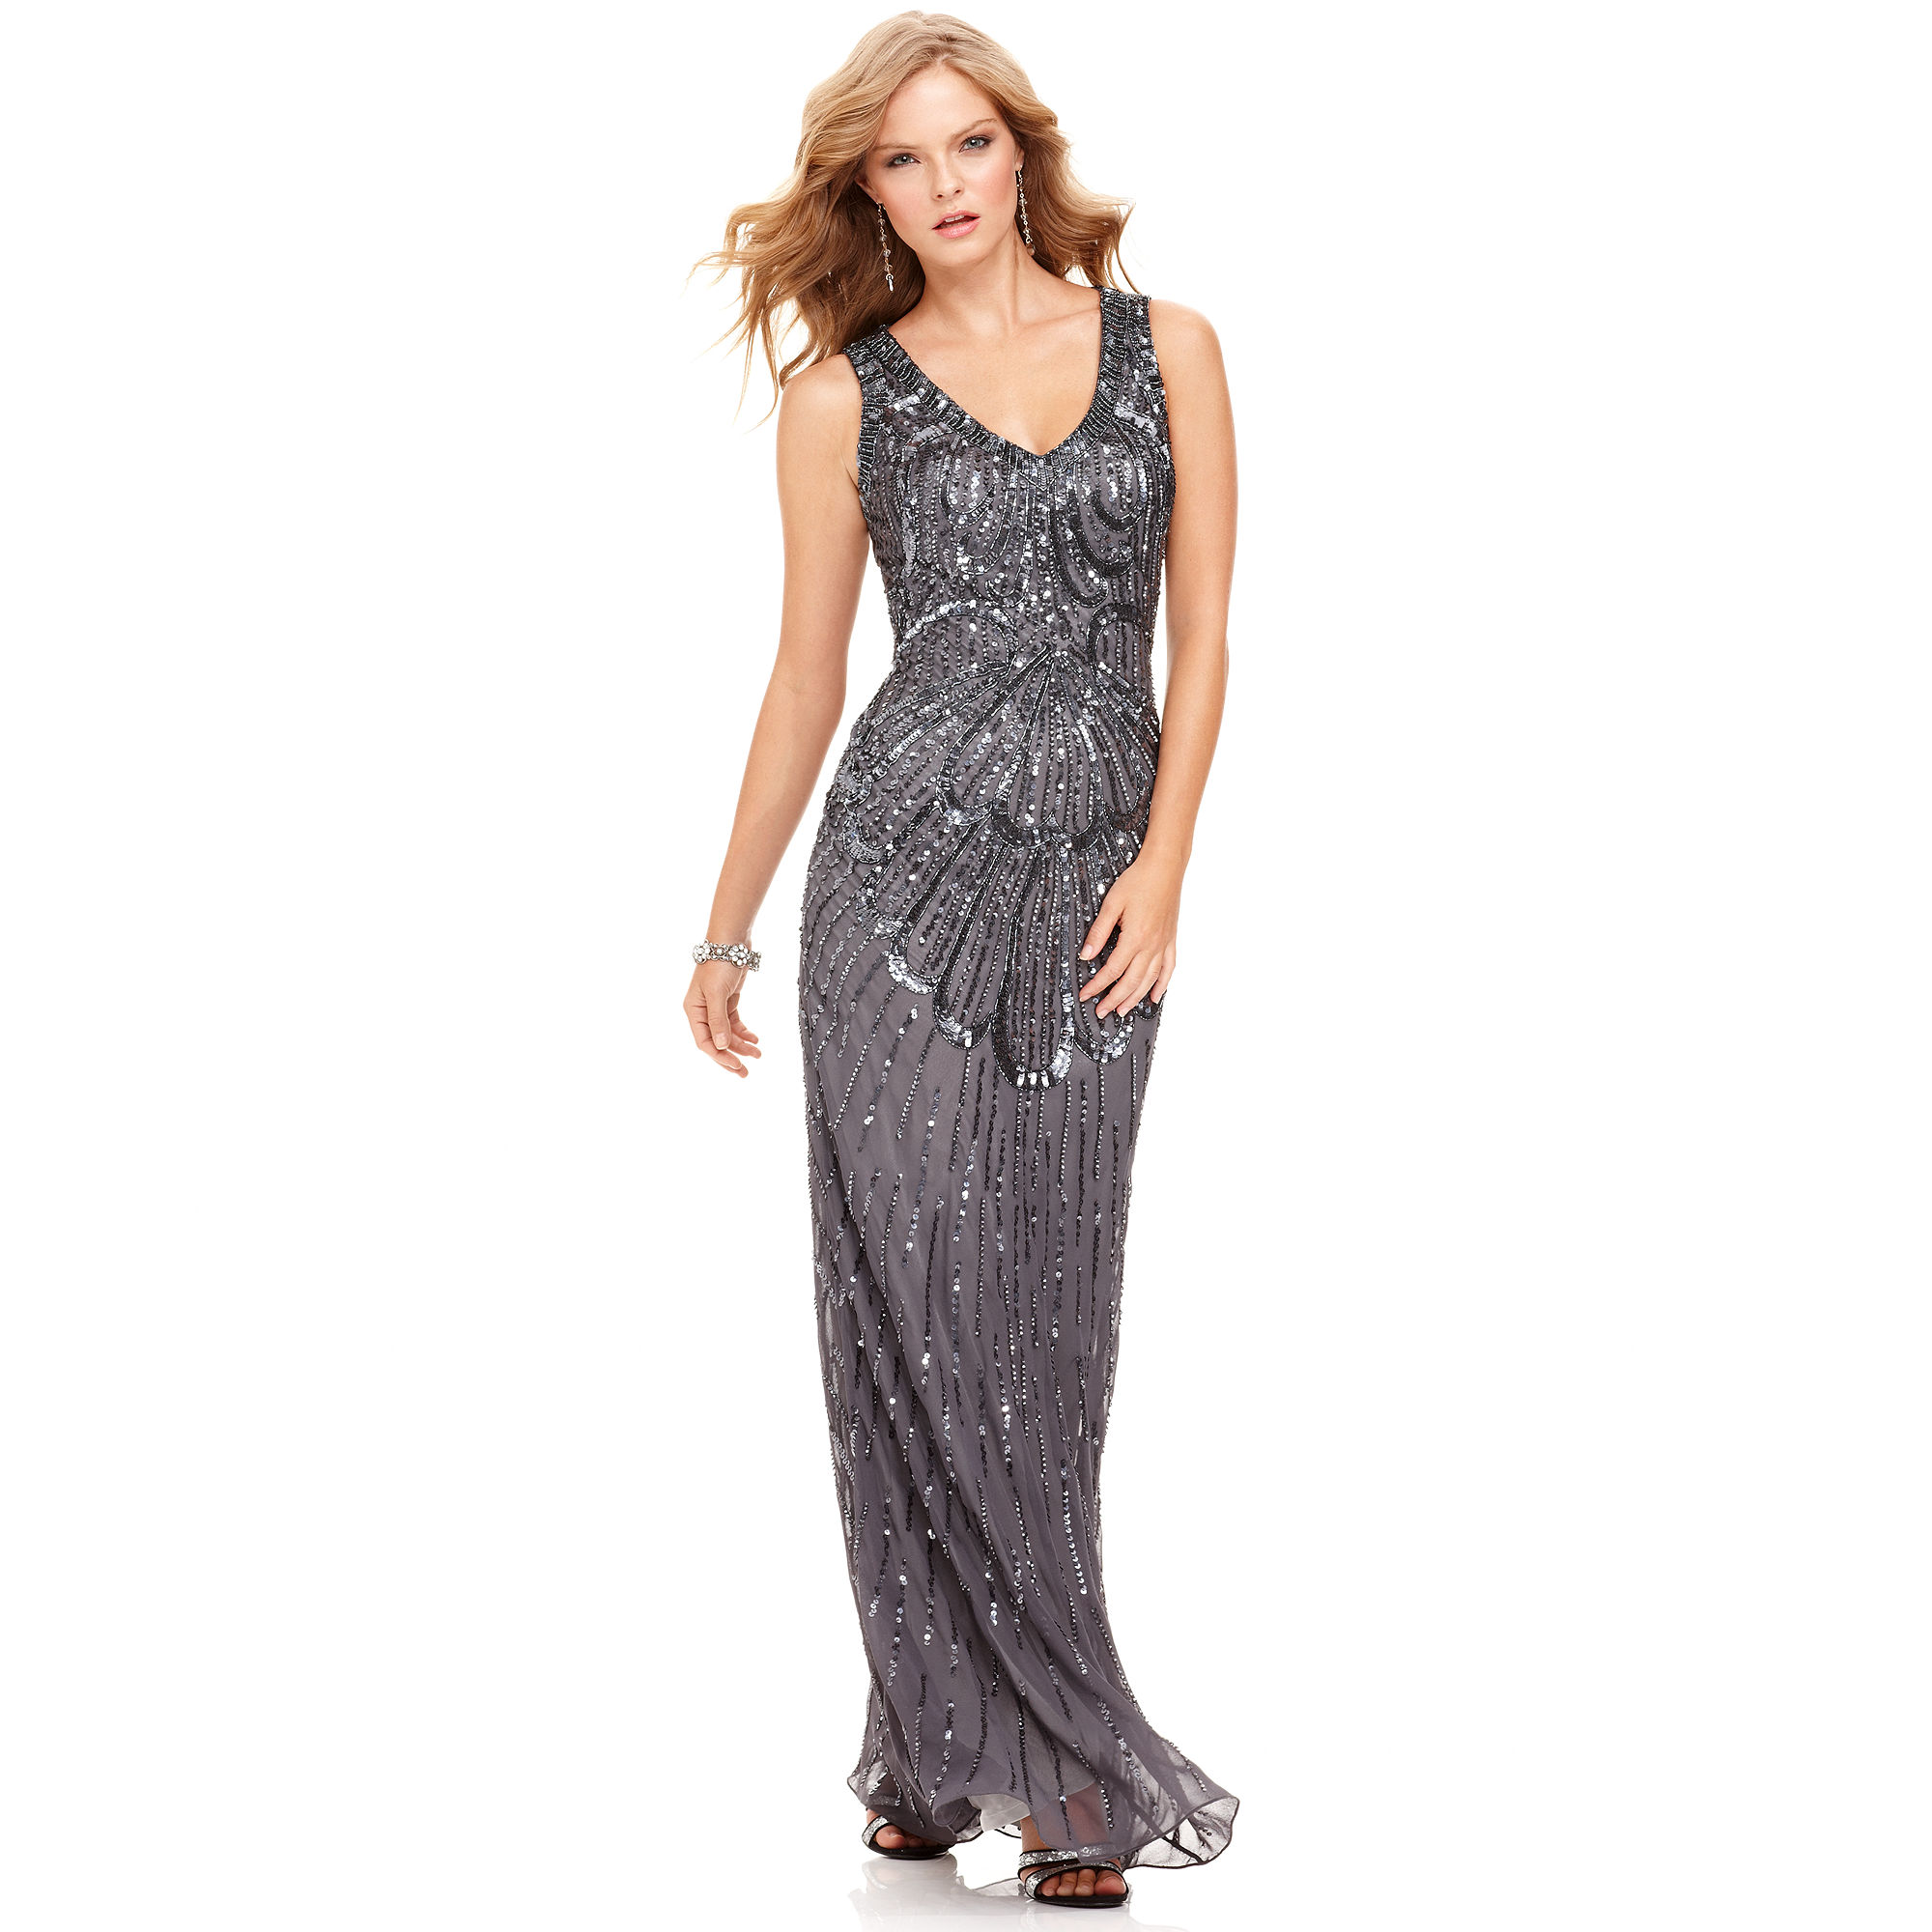 Lyst - Js Collections Fan Sequin Dress in Gray